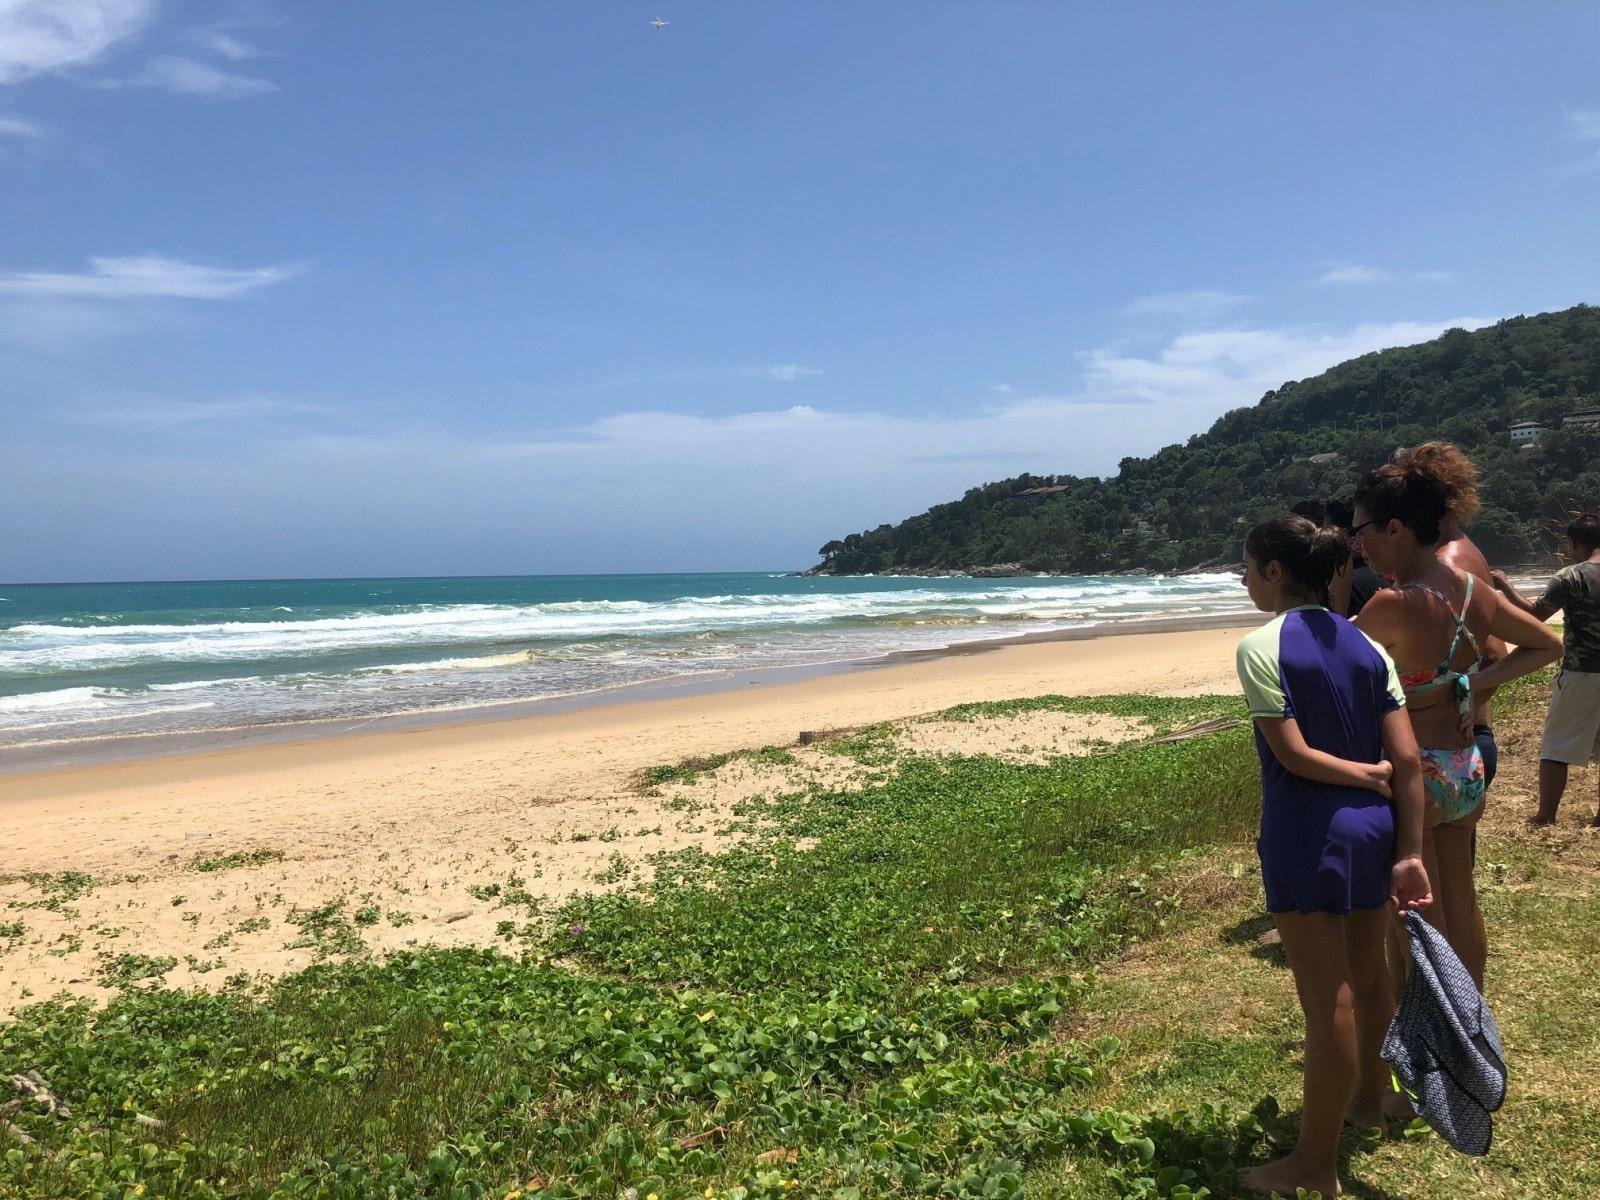 Search for Phuket's elusive reptile continues – Crocodile sightings off Karon Beach | The Thaiger